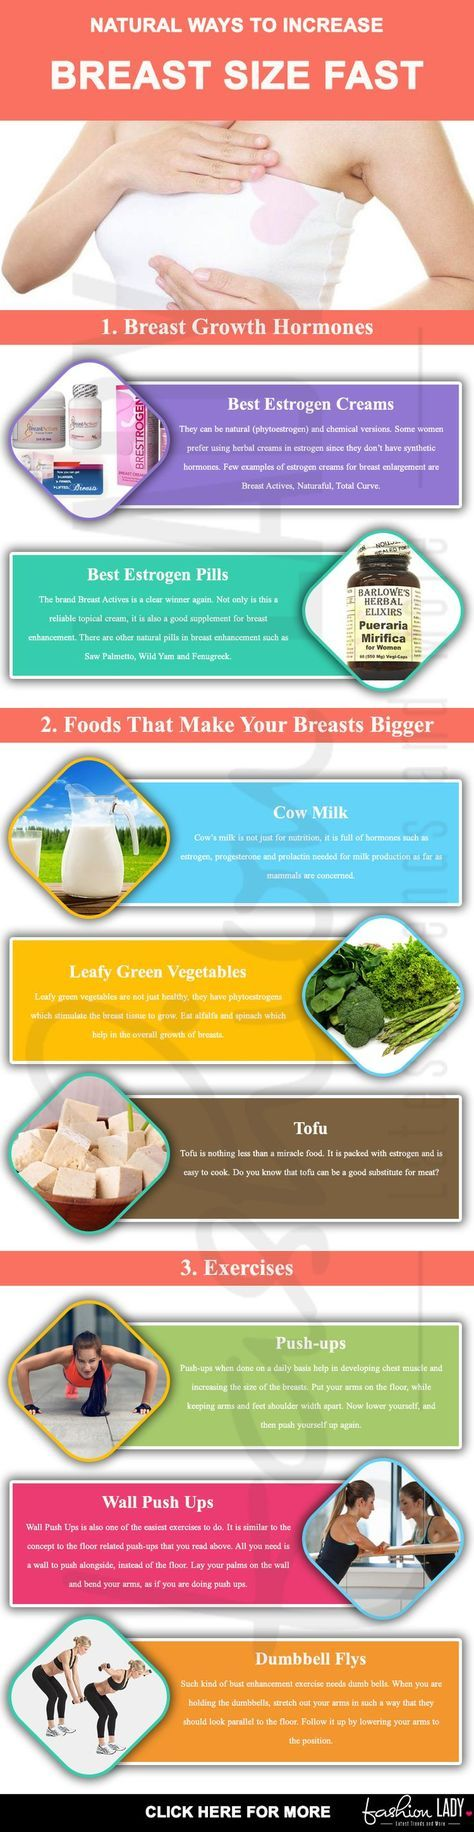 Natural Ways To Increase Breast Size Fast At Home - A -1325